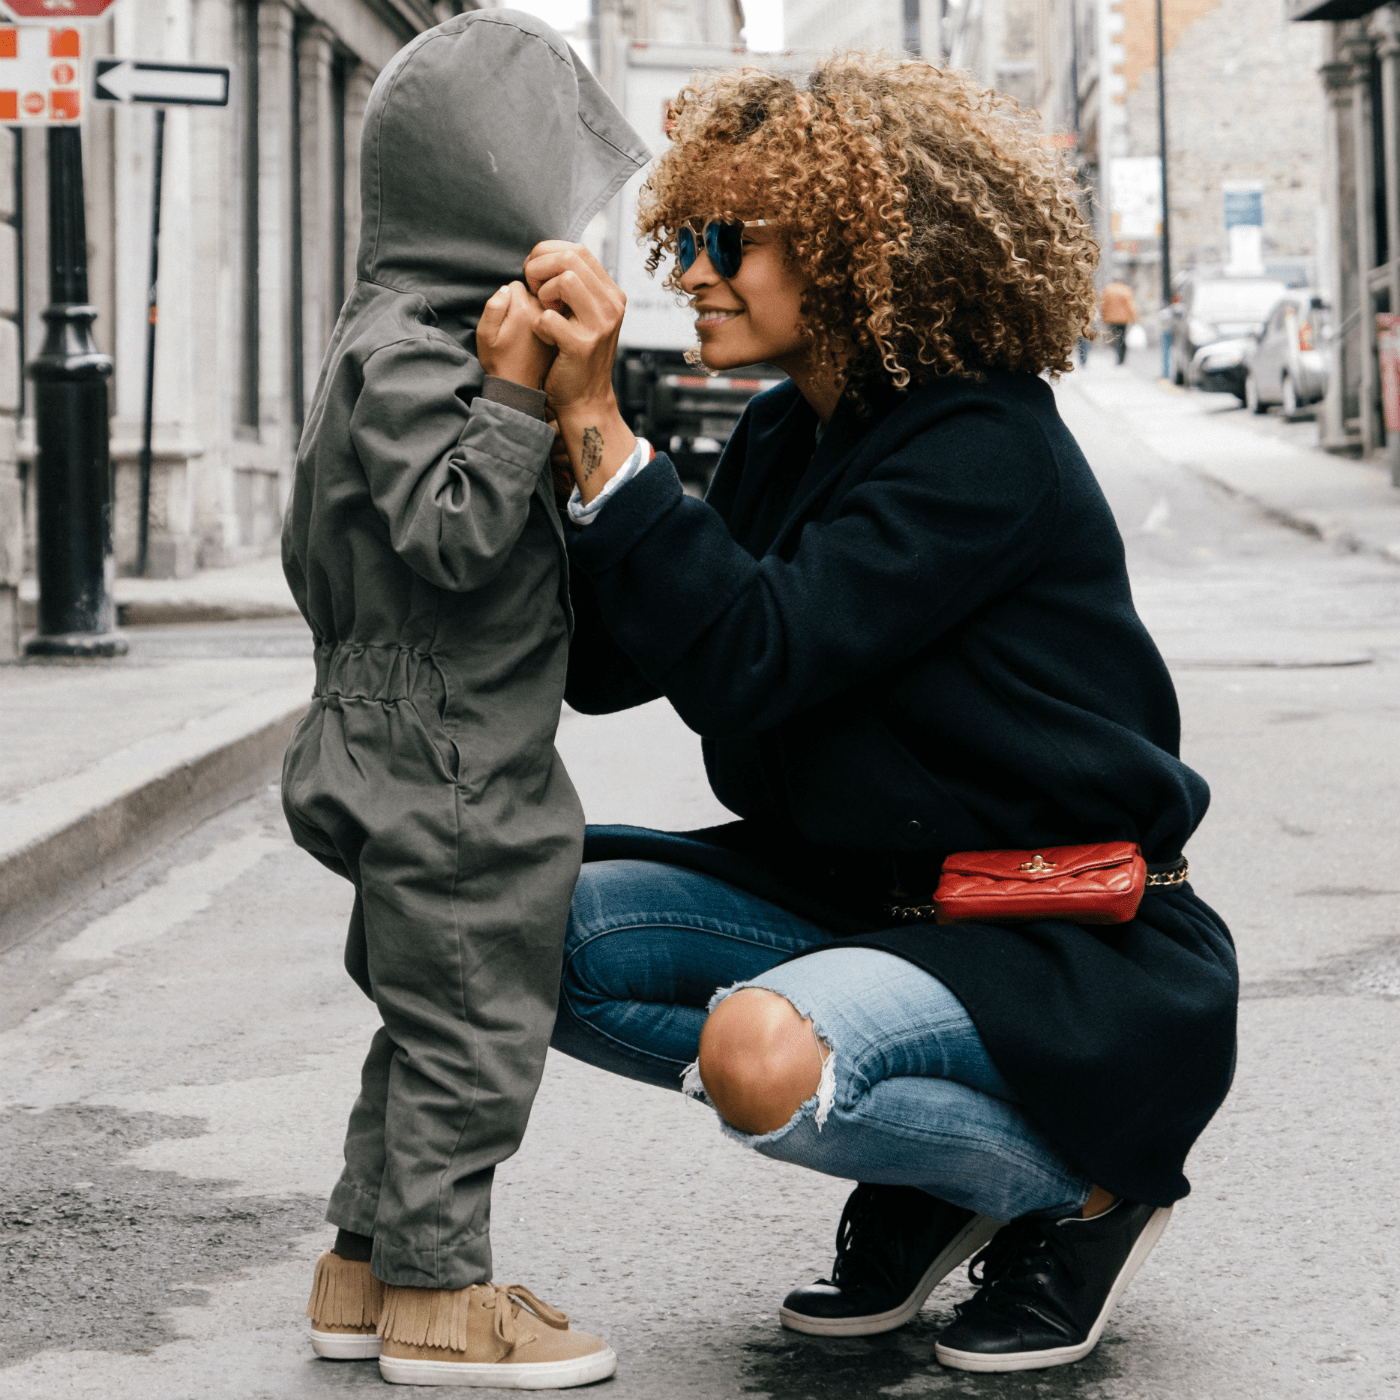 10 Parenting Wins You Should Always Celebrate //www.gritsngrace.com